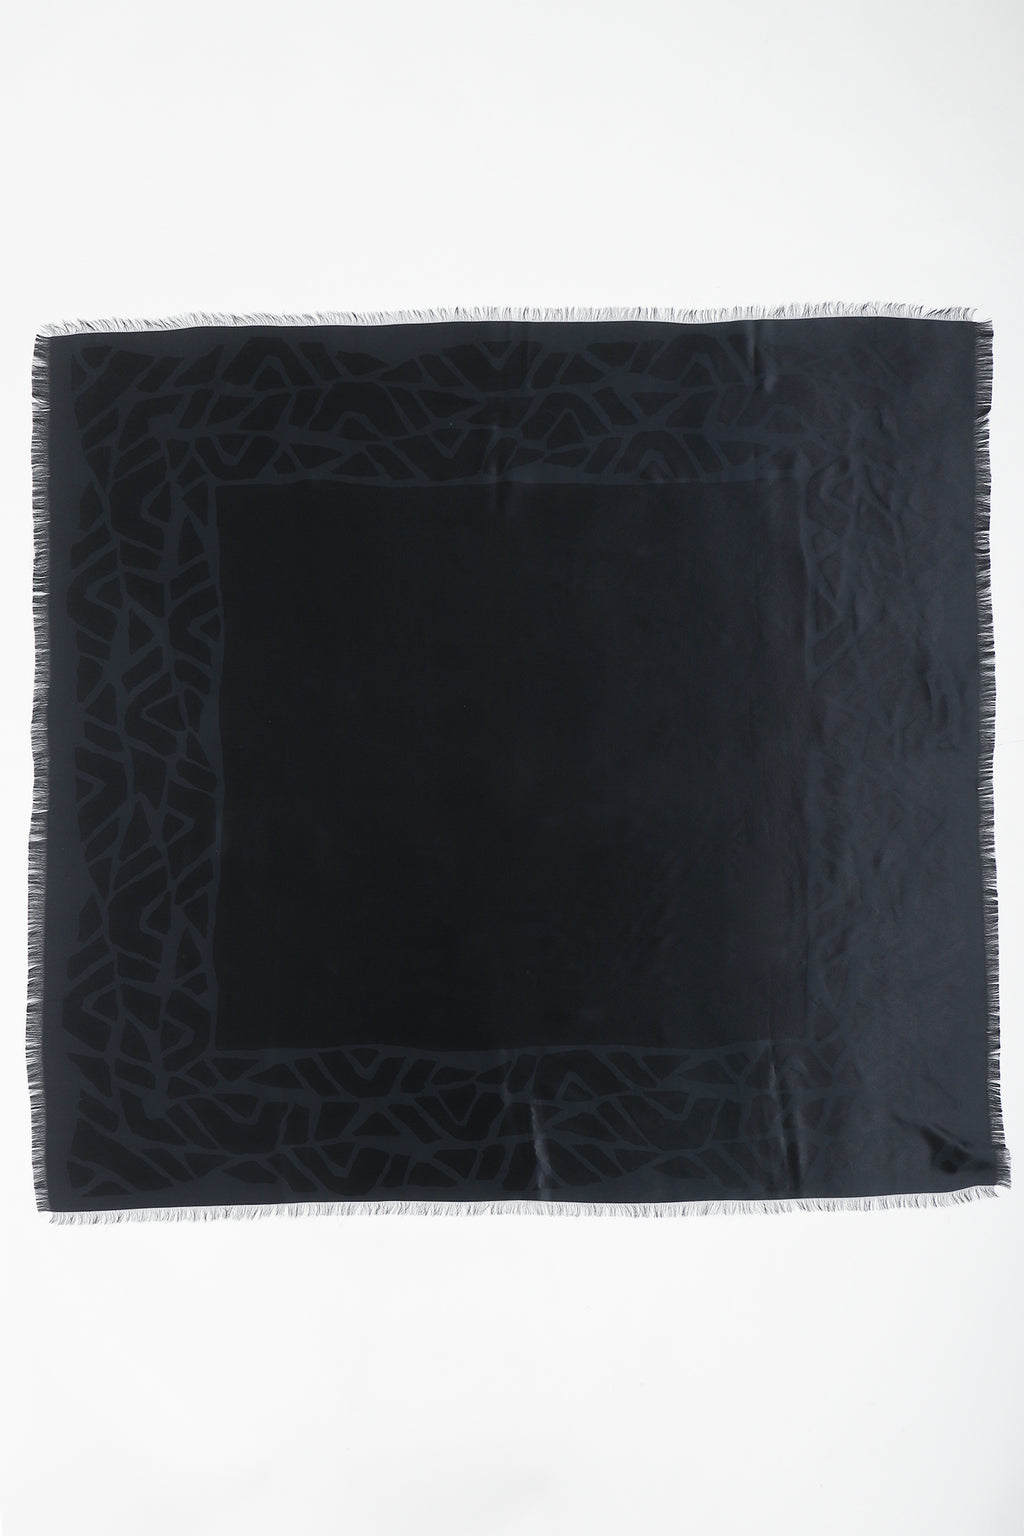 Vintage Yves Saint Laurent YSL Rive Gauche Oversized Noir Silk Scarf full at Recess Los Angeles